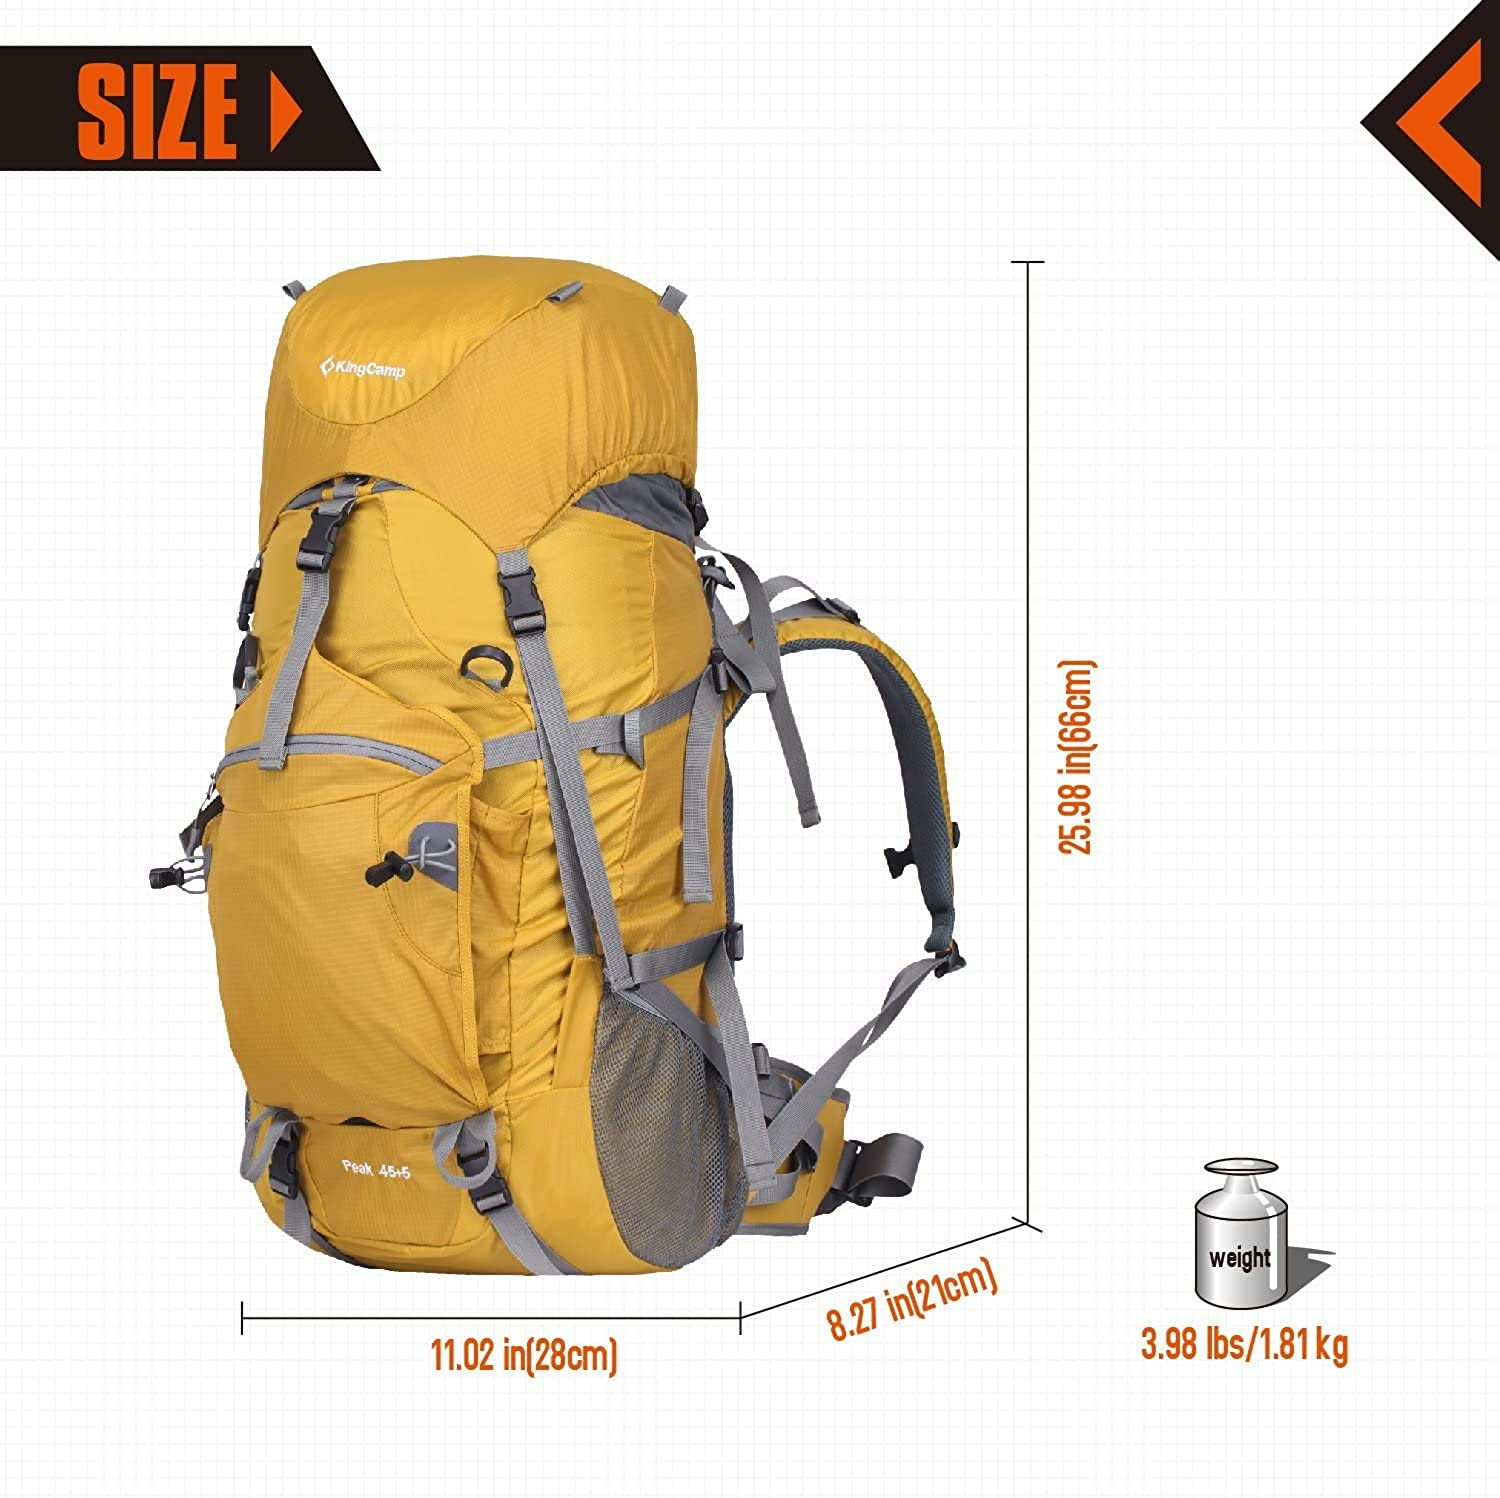 Dur-flex Buckle Backpack KingCamp PEAK PEACK 45+5L Waterproof Anti-Tear Water Repellent Climbing Backpack with Adjustable Strap Belt Internal Frame Packs with Rain Cover and Emergency Whistle